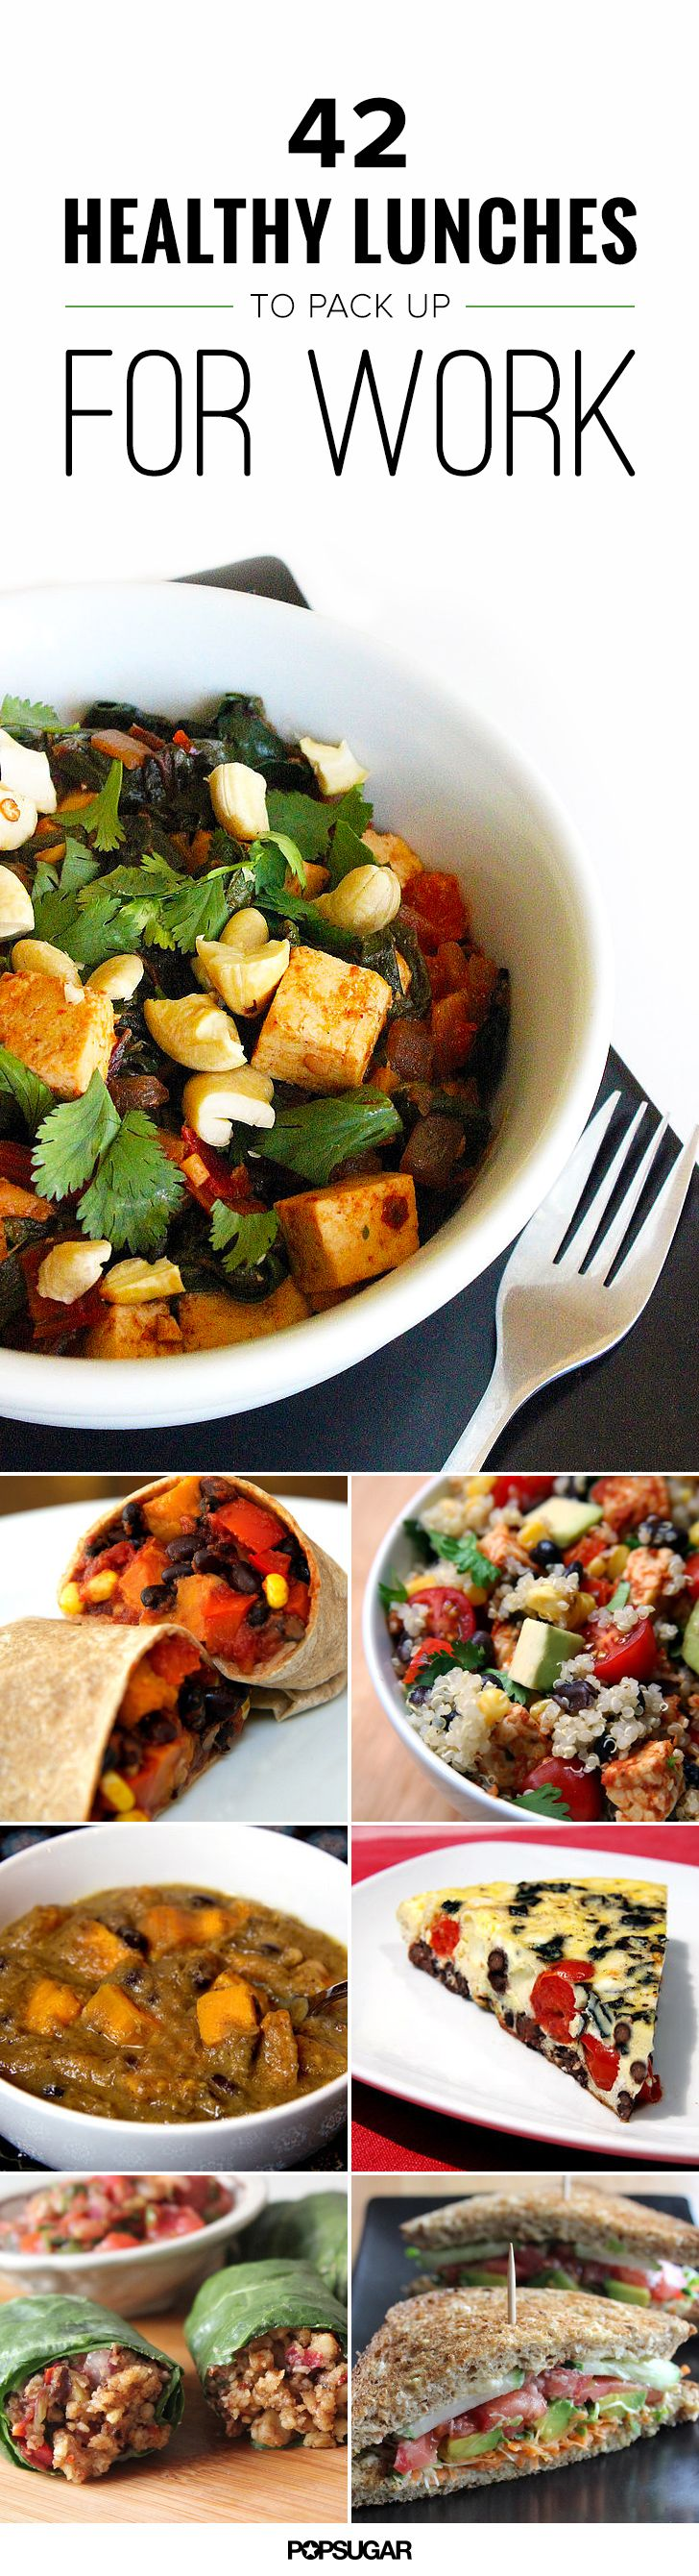 Take advantage of these healthy lunch recipes.